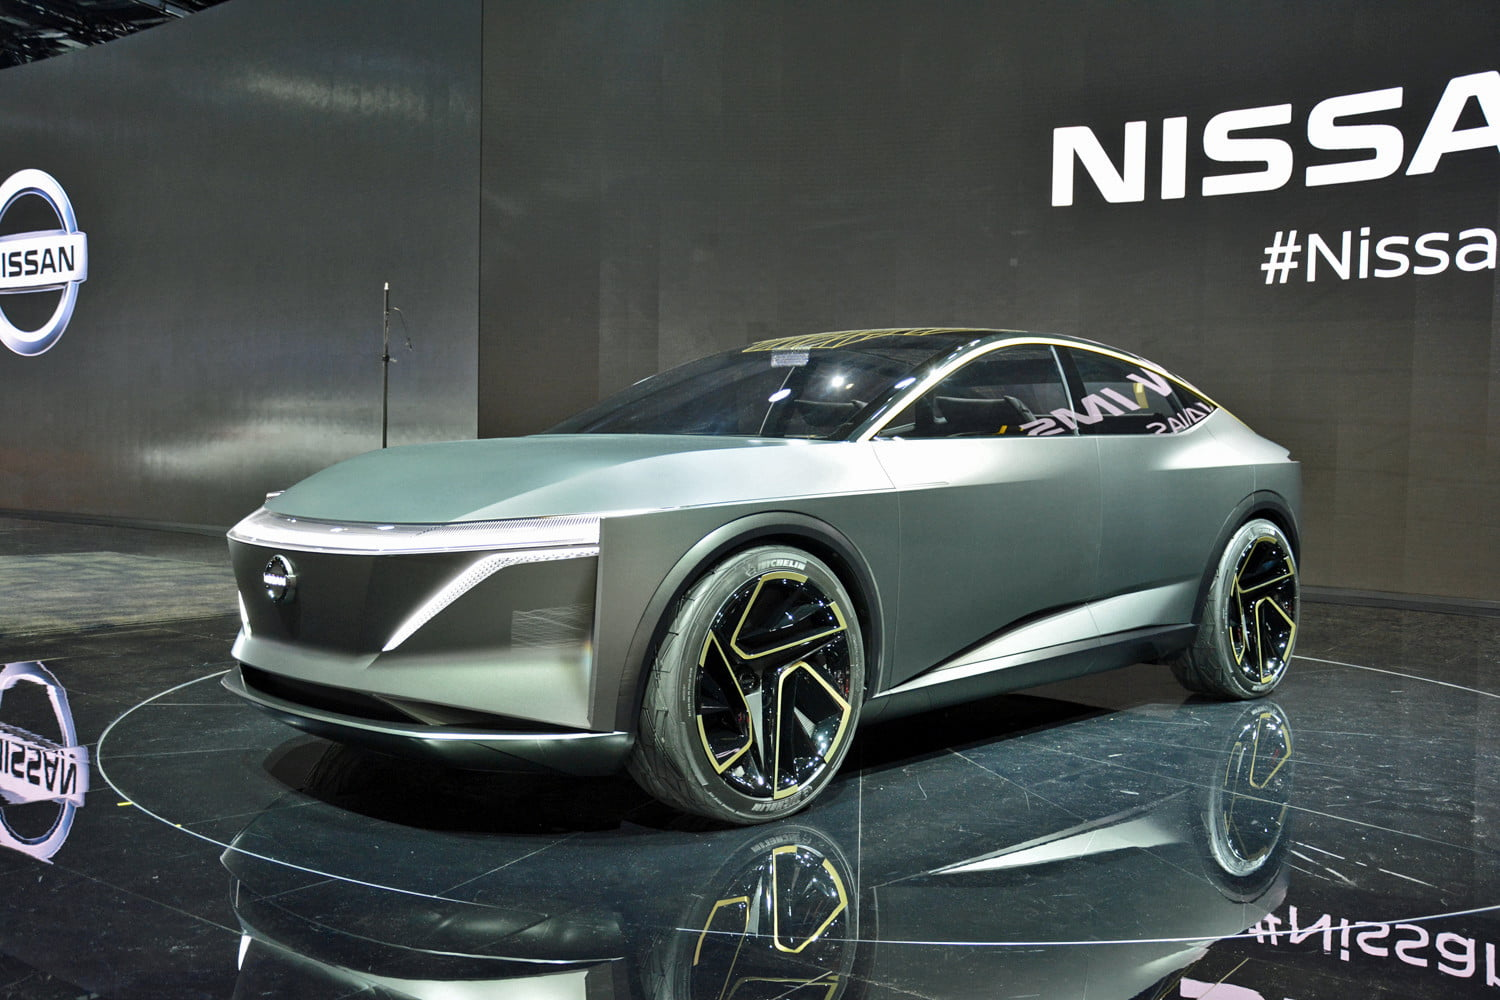 Nissan Ims Concept Teases A Future Long Range Autonomous Electric Car